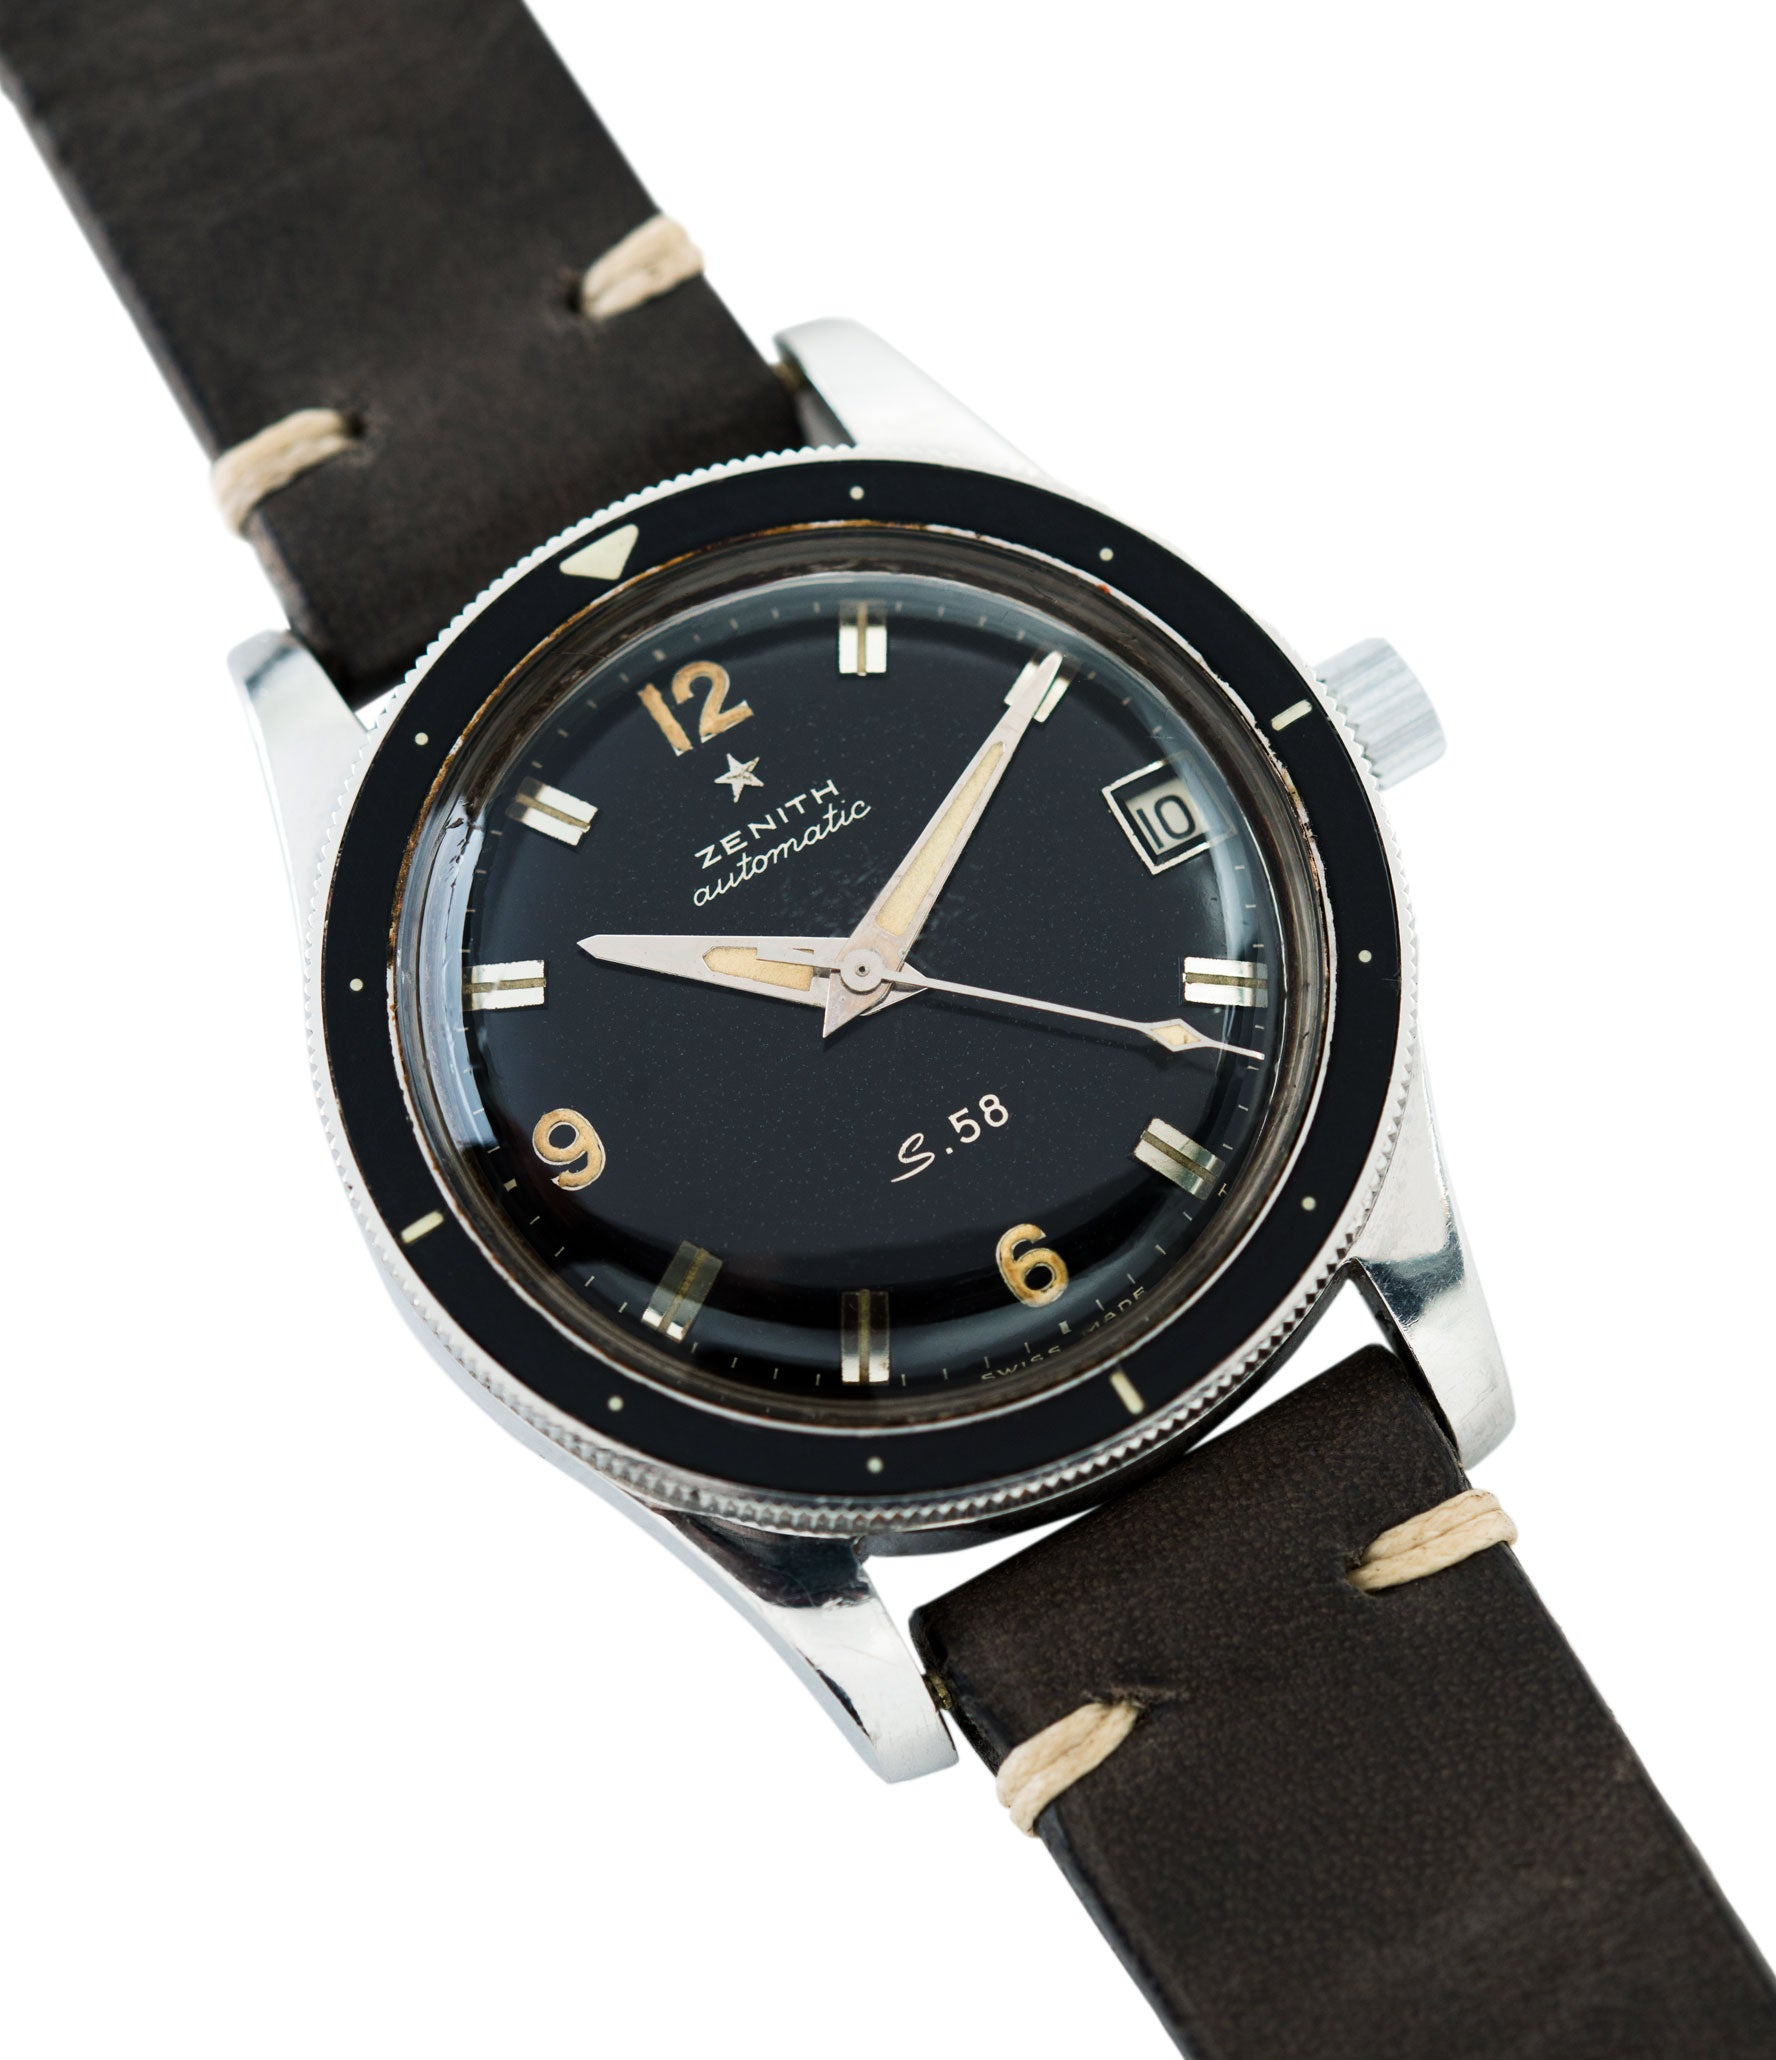 sell Zenith S.58 Cal 2542 PC vintage steel divers watch bakelite bezel for sale online at A Collected Man London UK specialist rare vintage watches